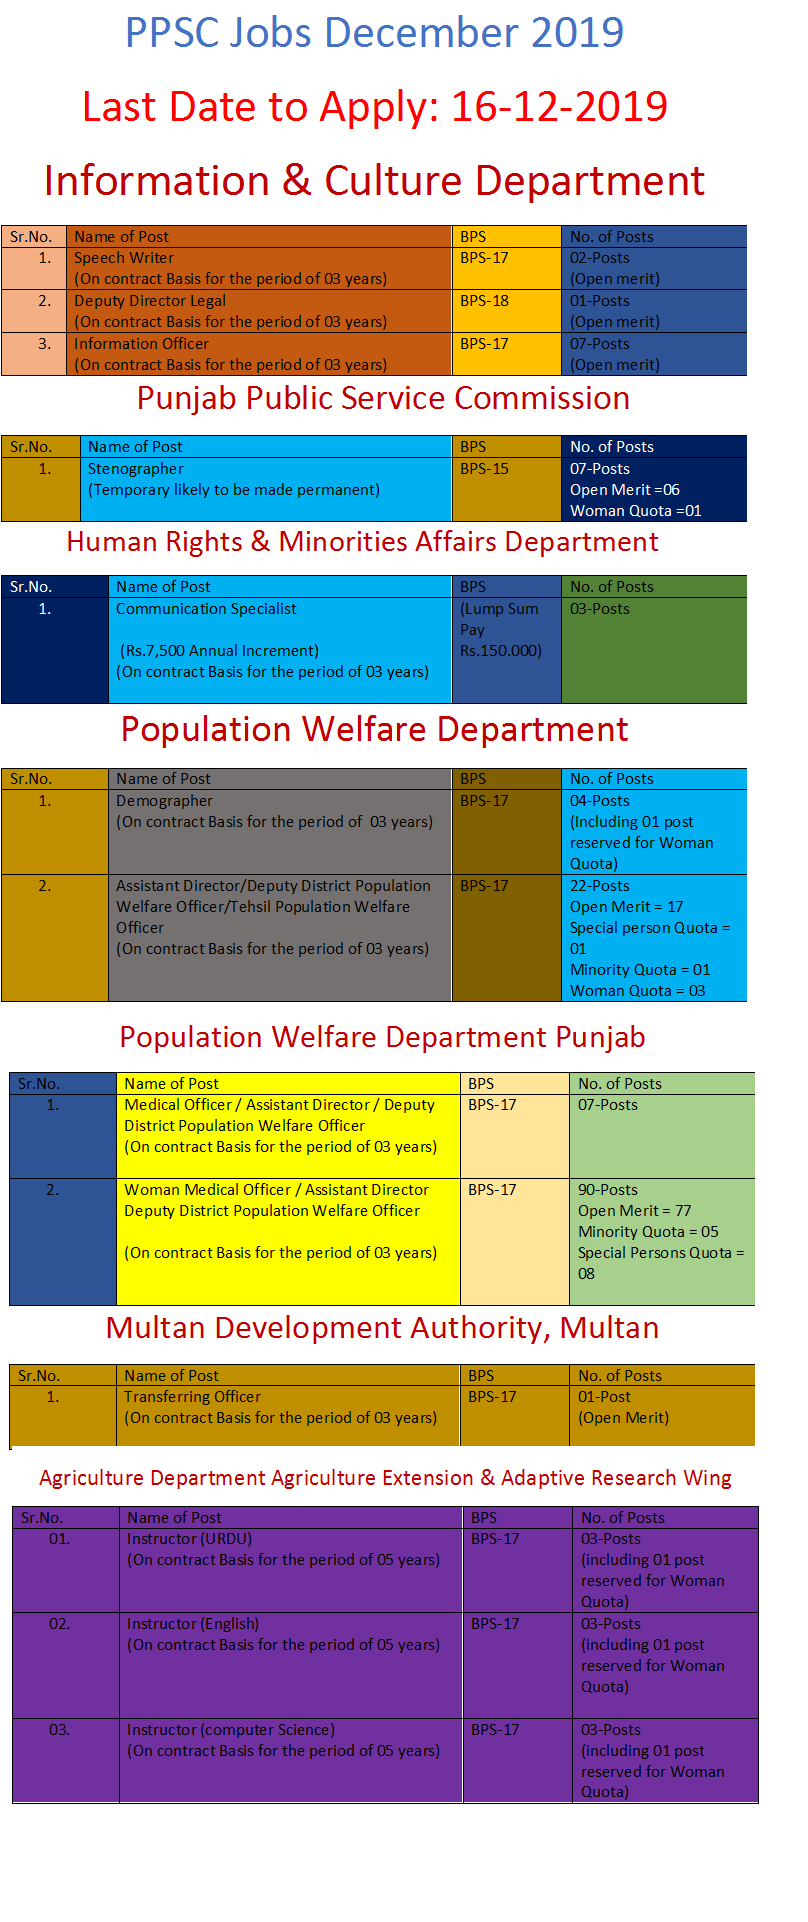 PPSC Jobs in Population Welfare Department